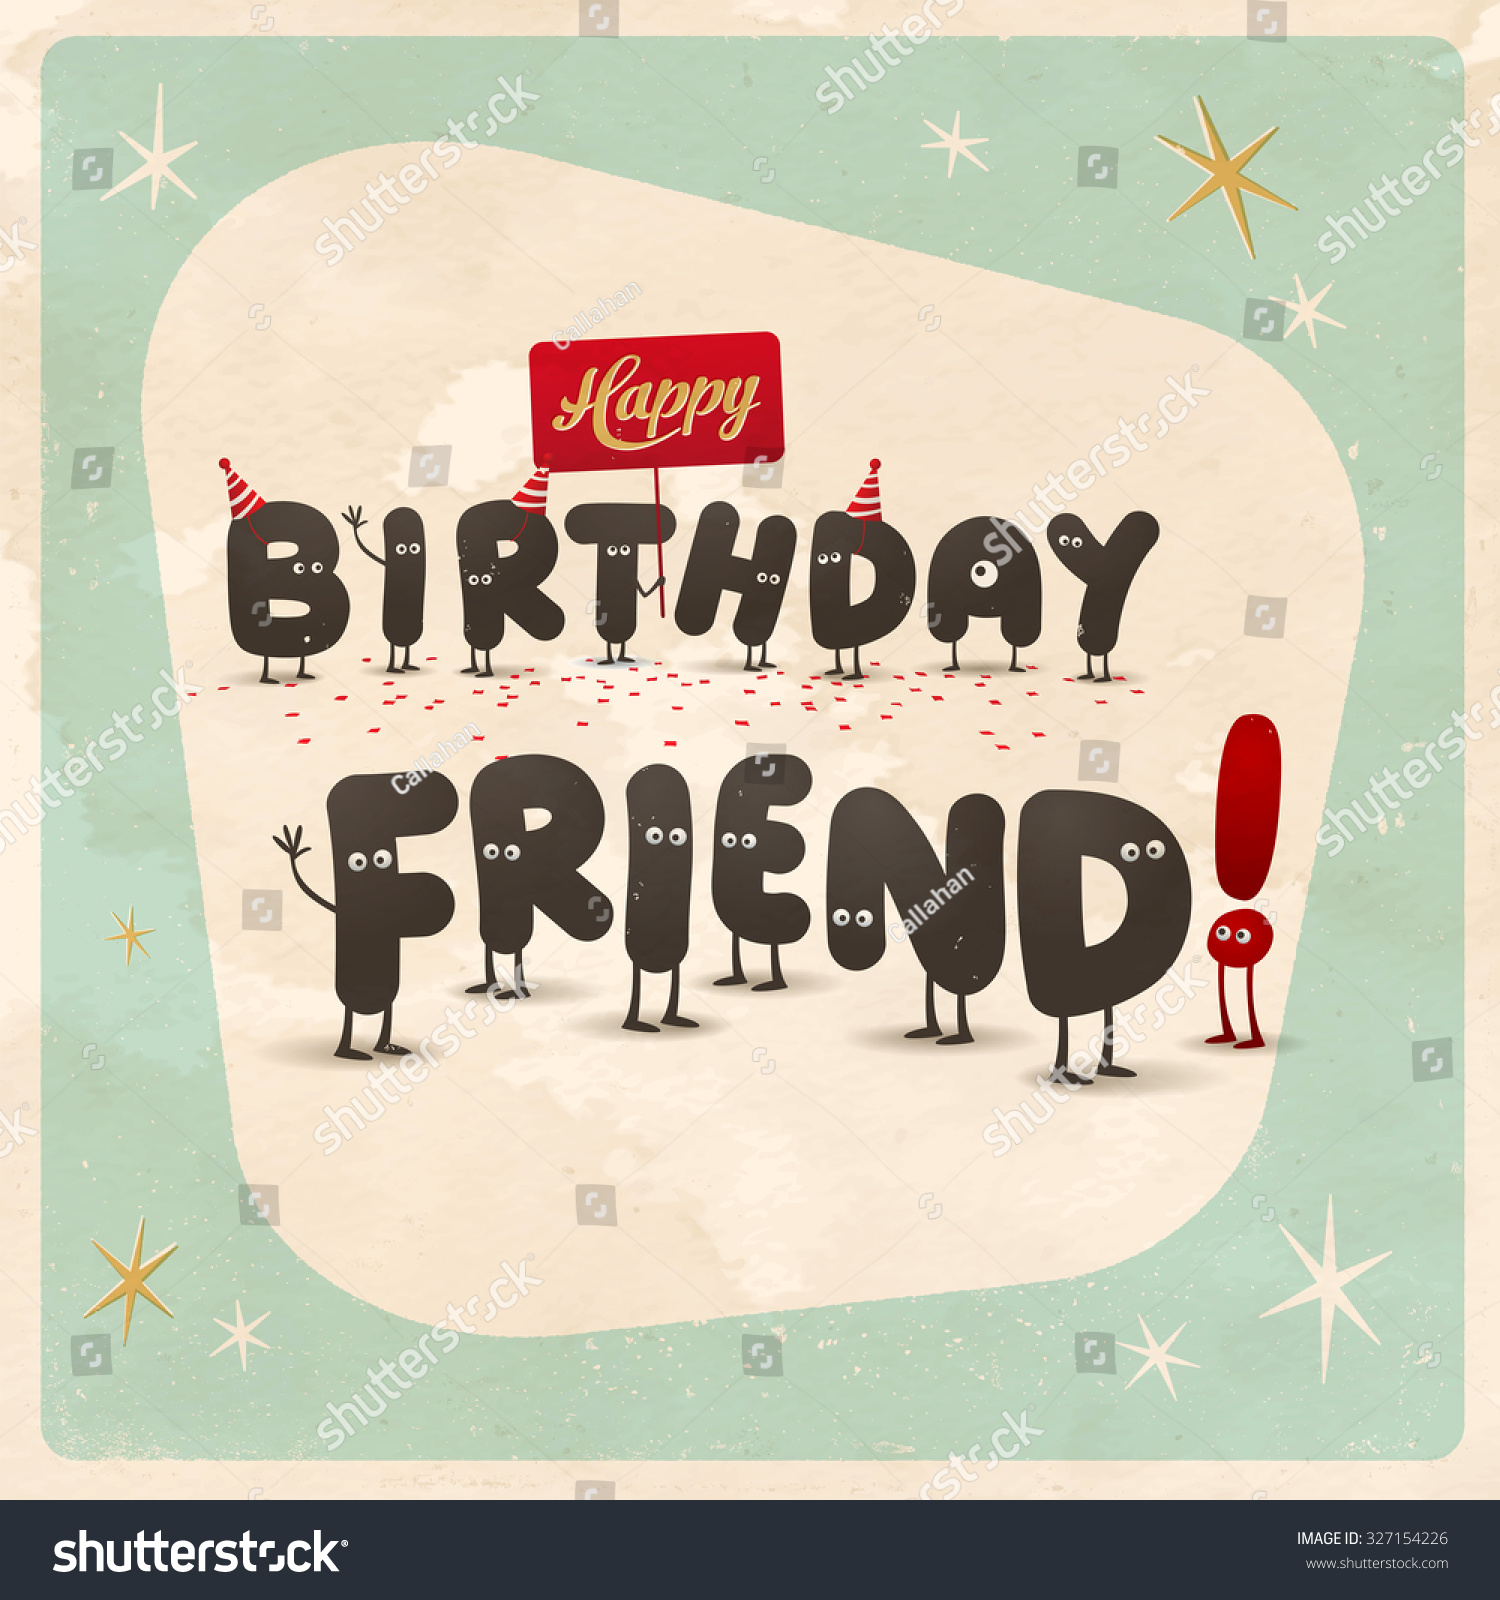 Vintage style funny Birthday Card Happy Birthday Friend Editable grunge effects can be easily removed for a brand new clean sign